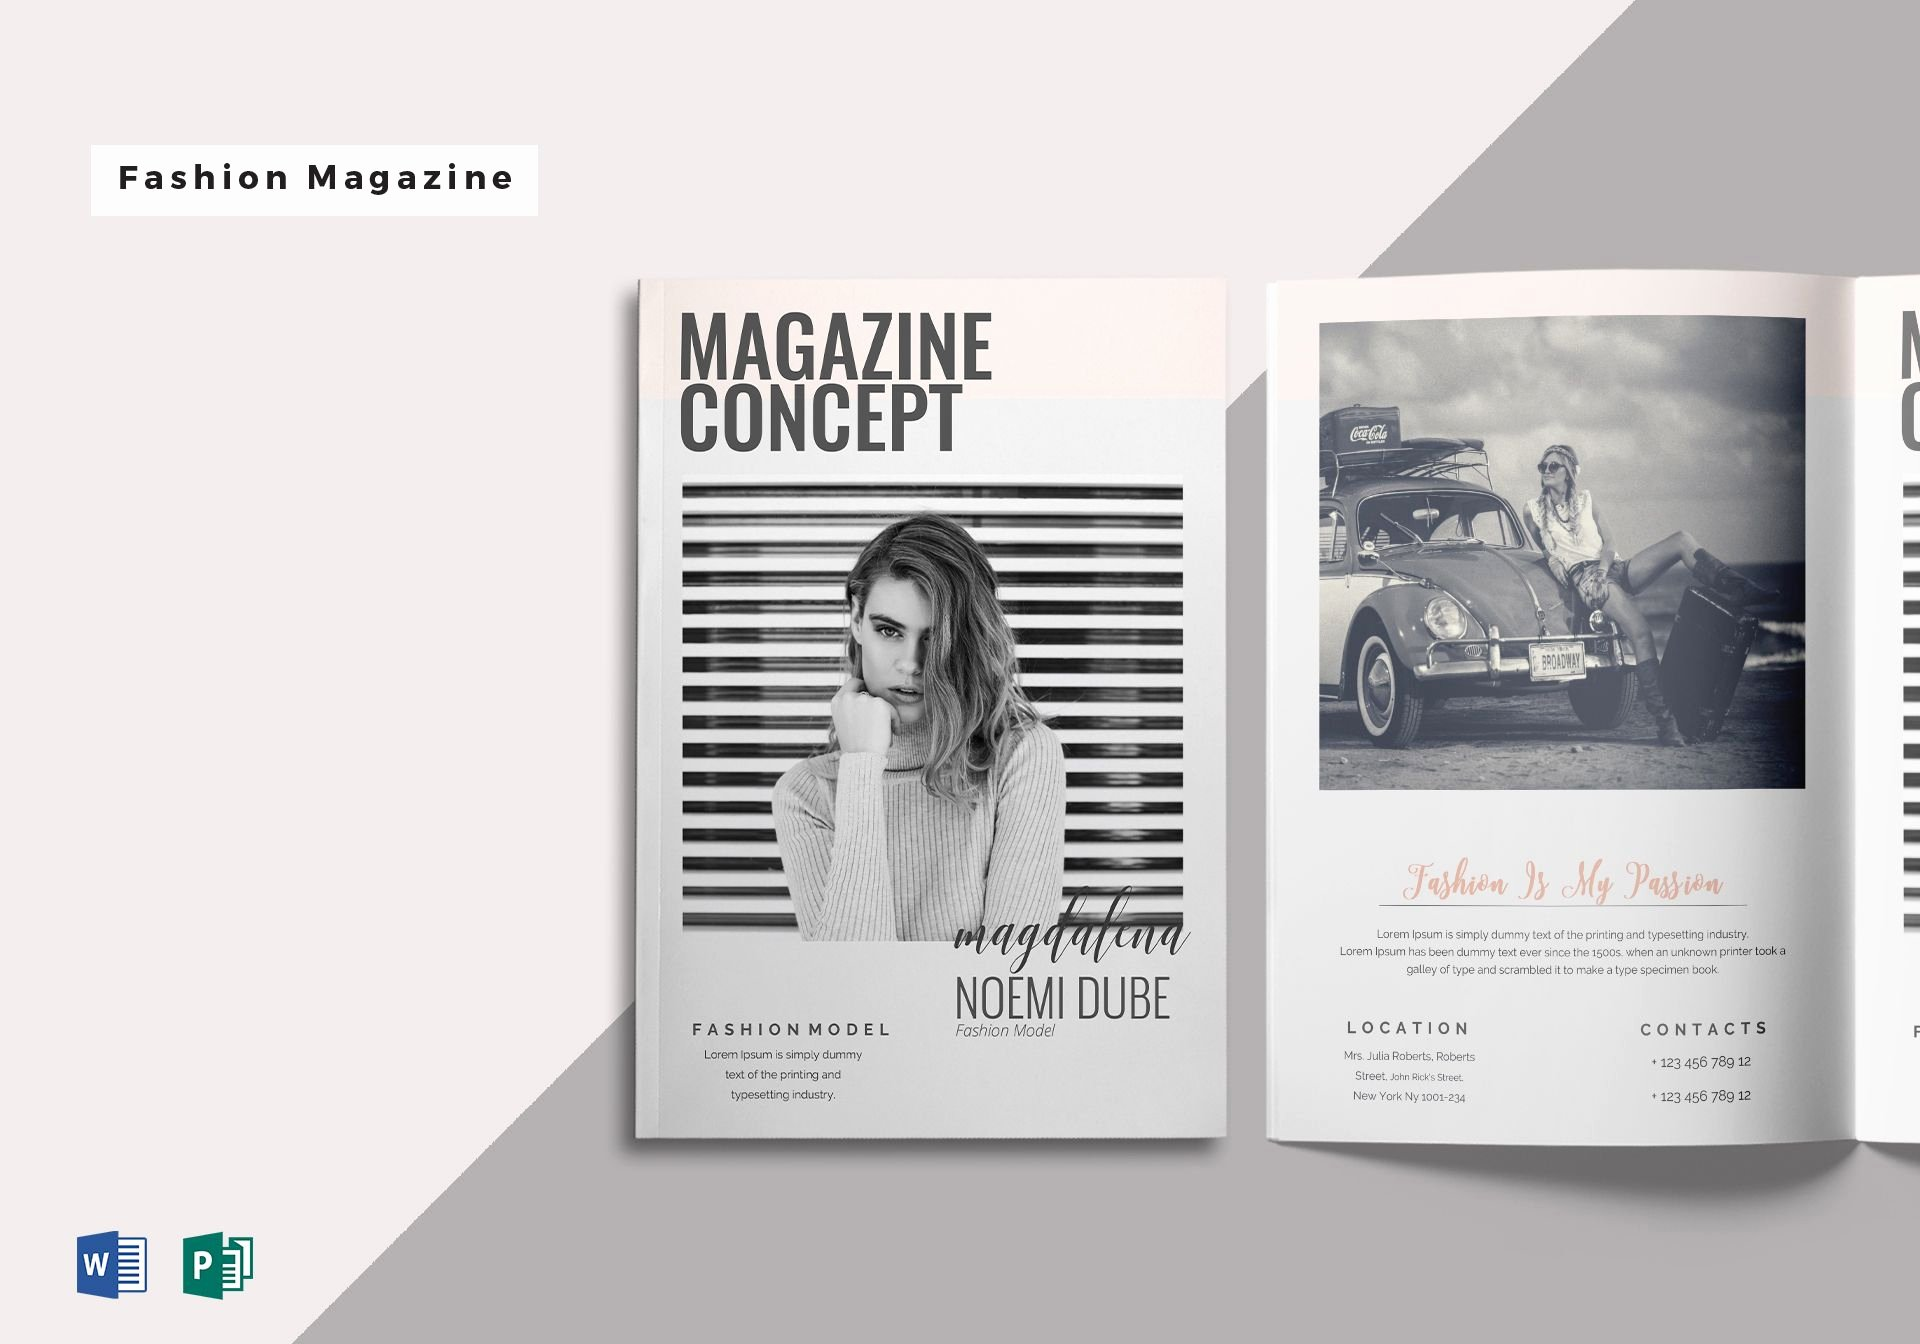 Magazine Templates for Word Awesome Fabulous Fashion Magazine Template In Word Publisher